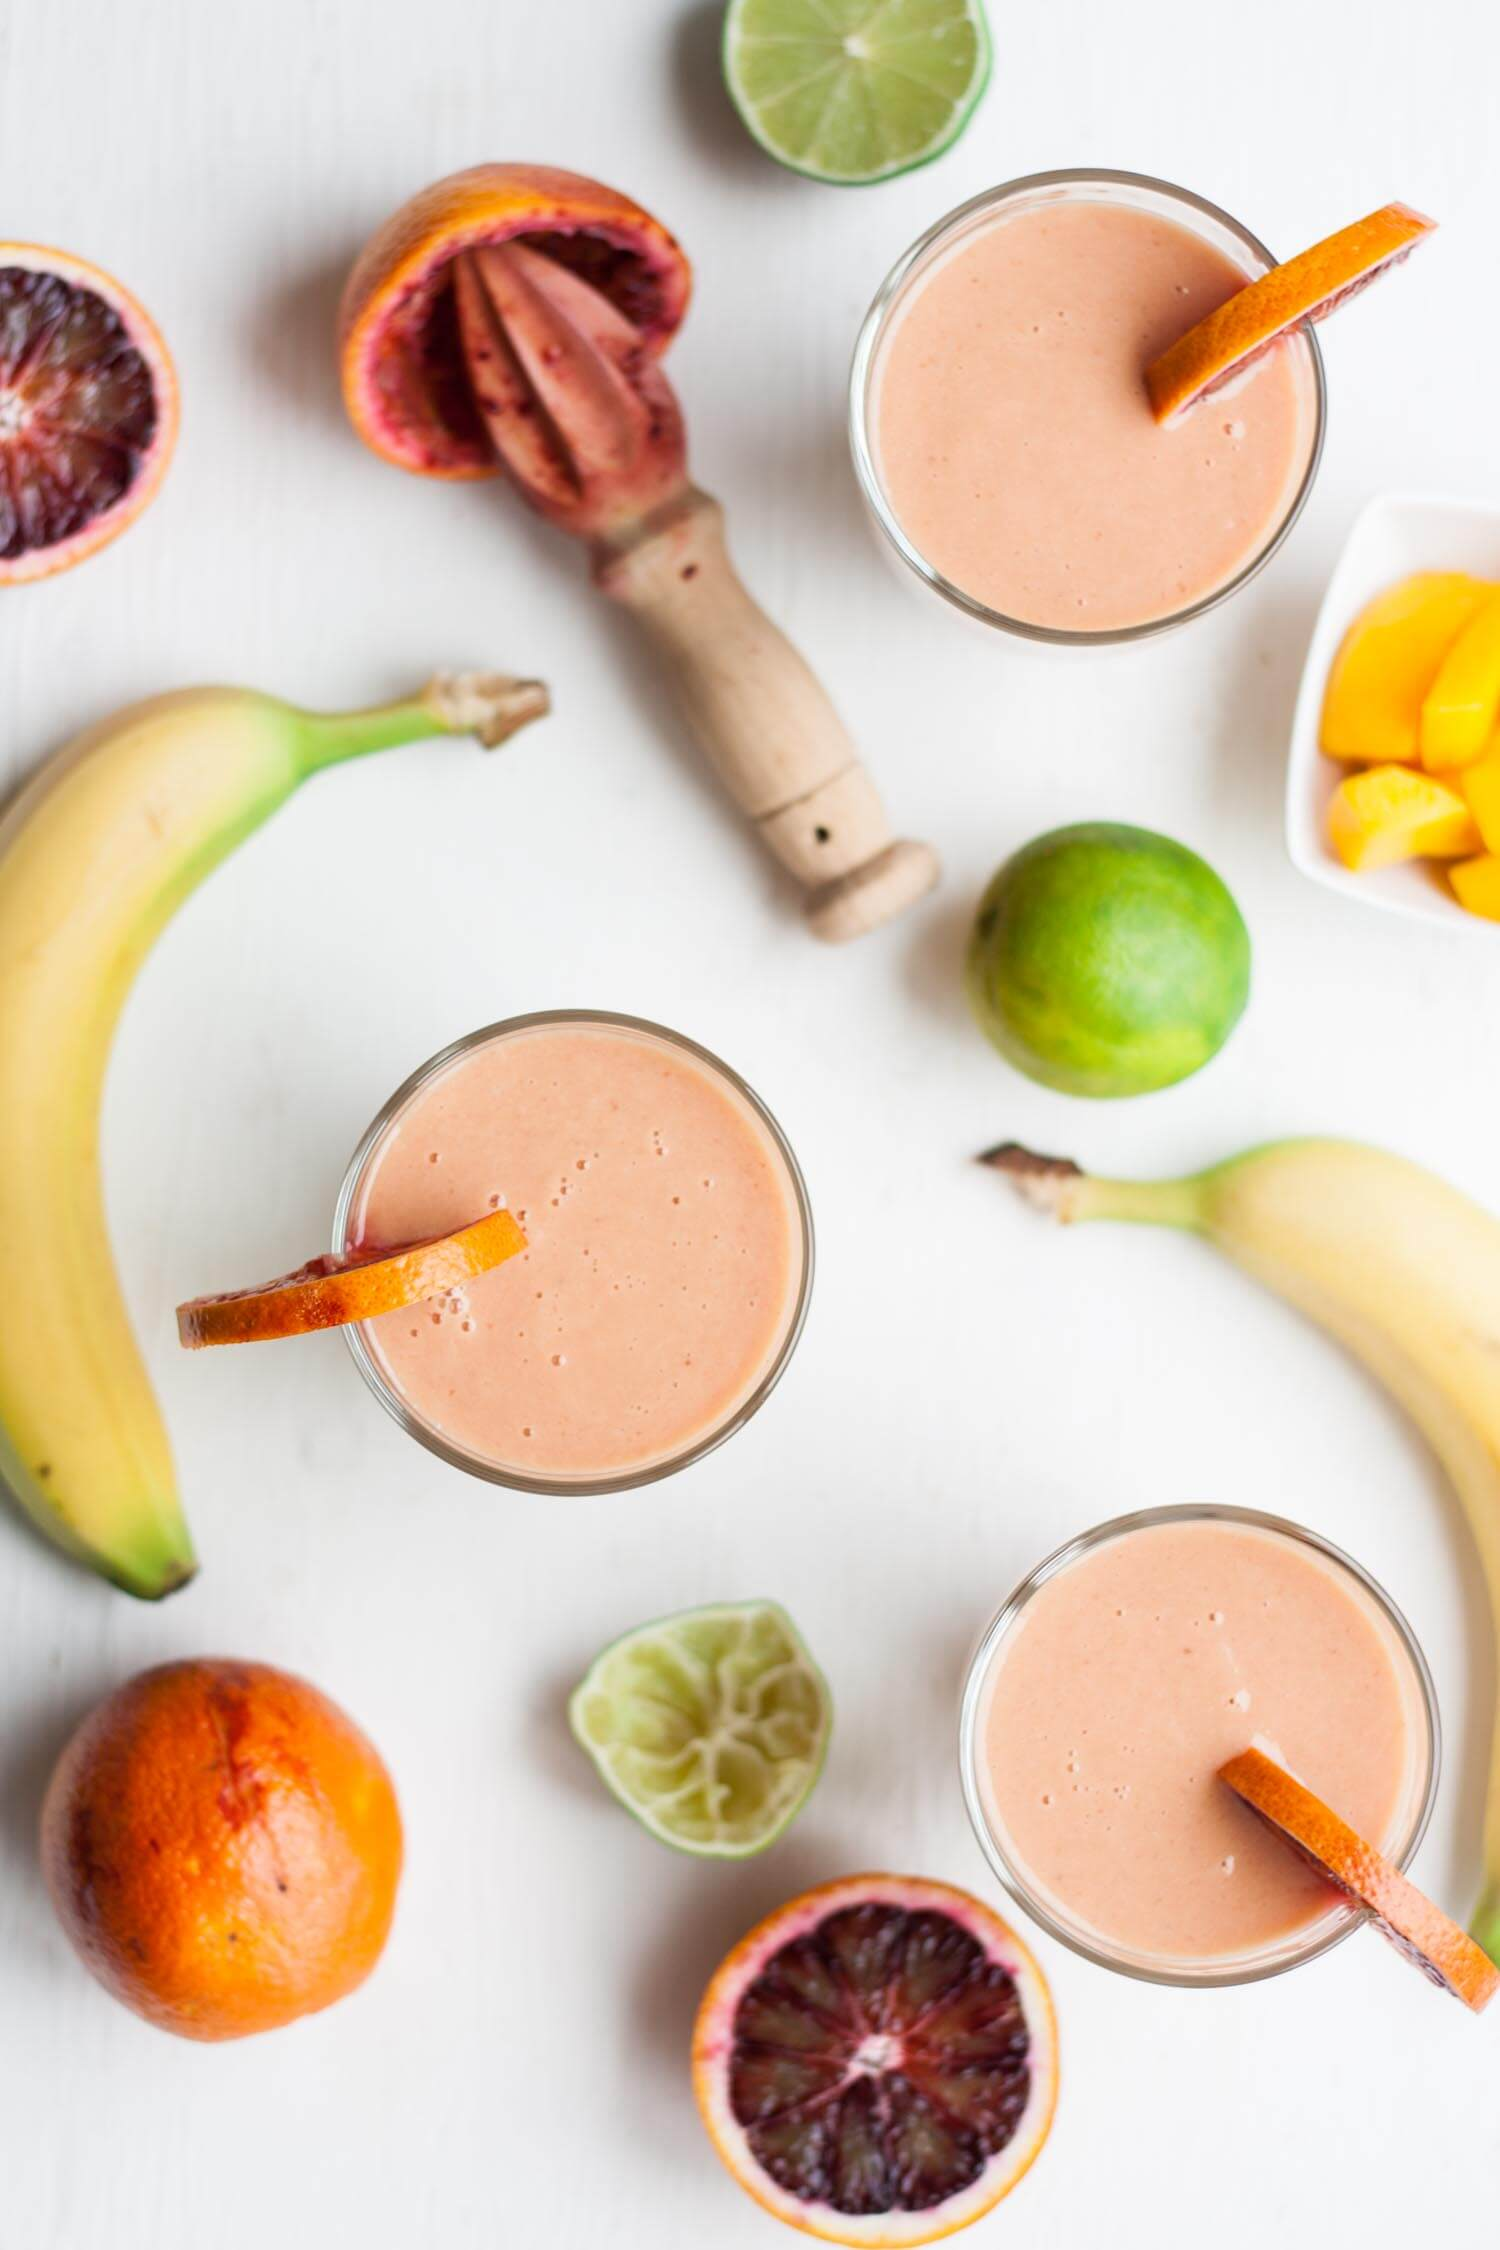 Blood Orange and Mango Smoothie - this seasonal fruit smoothie is the perfect simple healthy breakfast and takes just 5 minutes to make! | eatloveeats.com